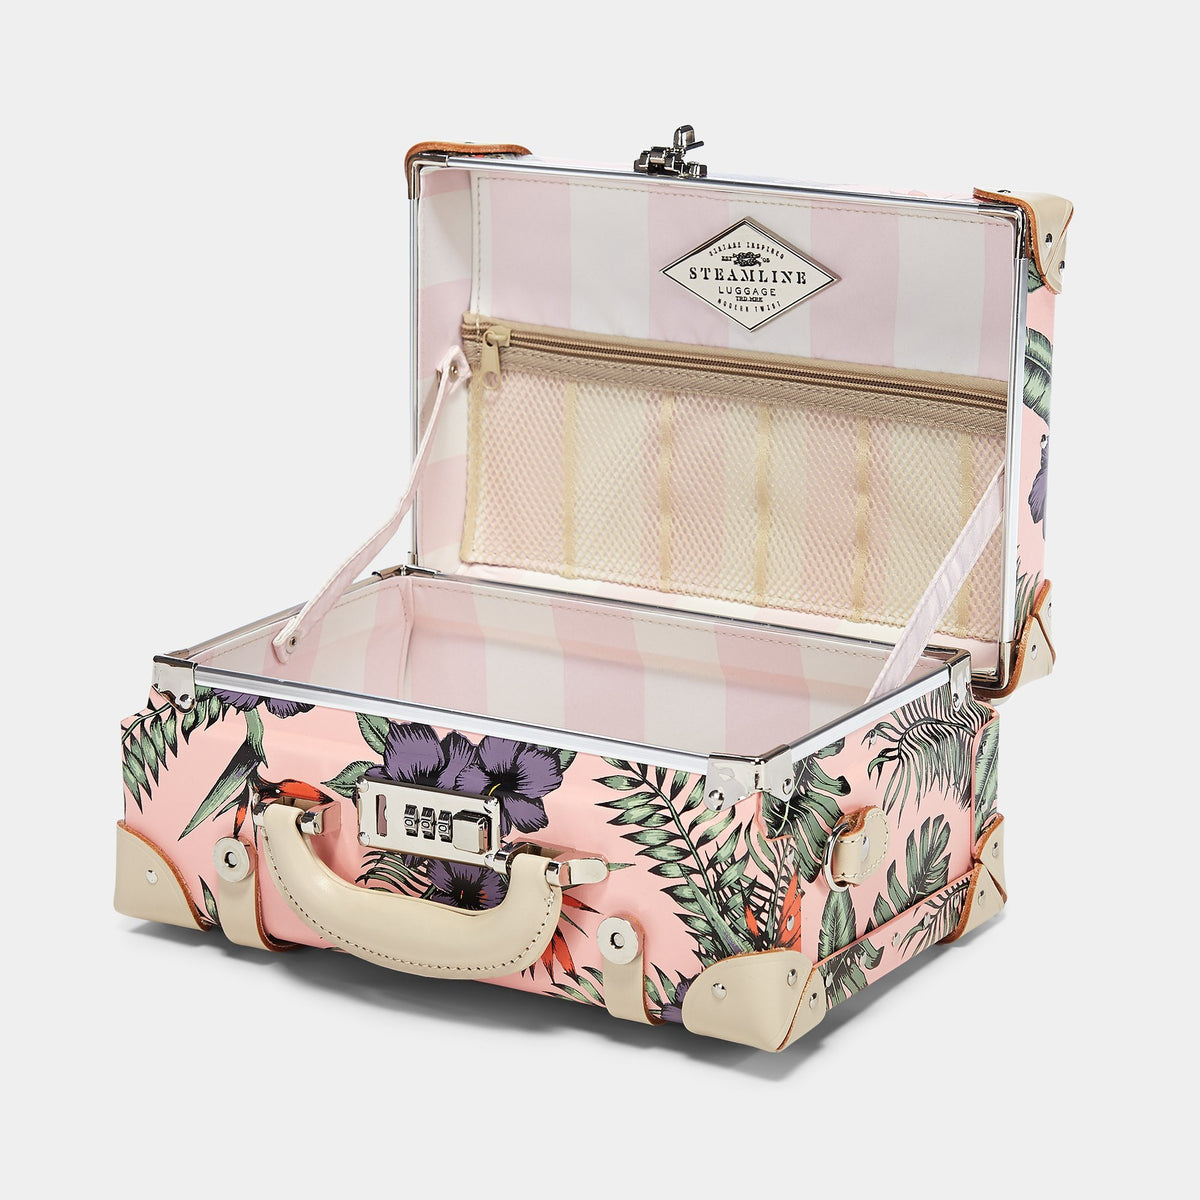 The Botanist Rose Vanity